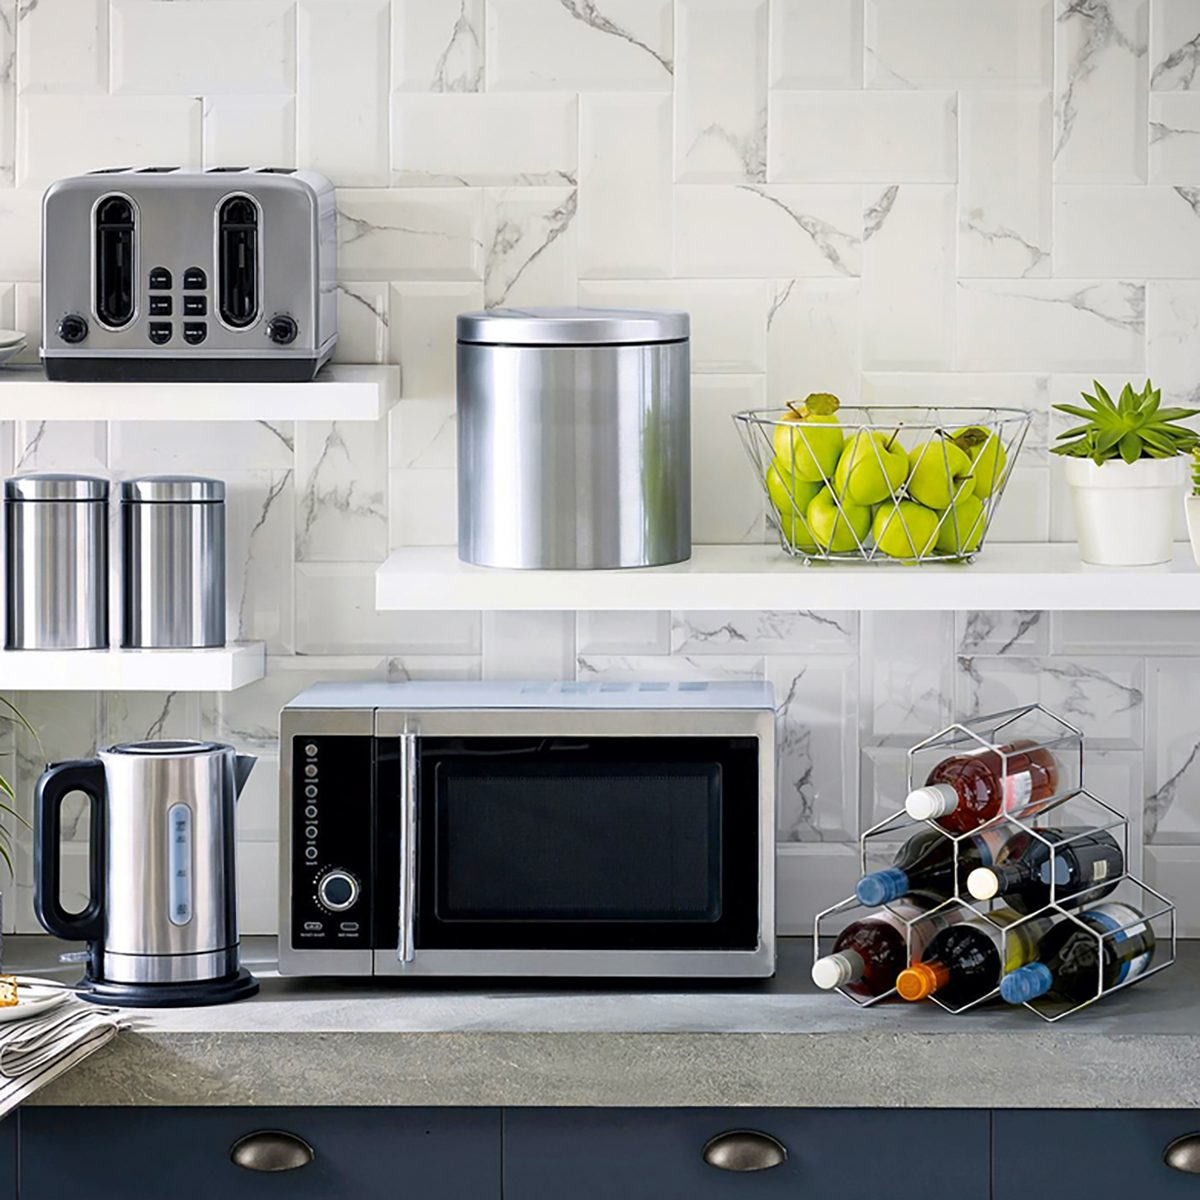 Microwave the kitchenware home appliance isolated in the kitchen interior;